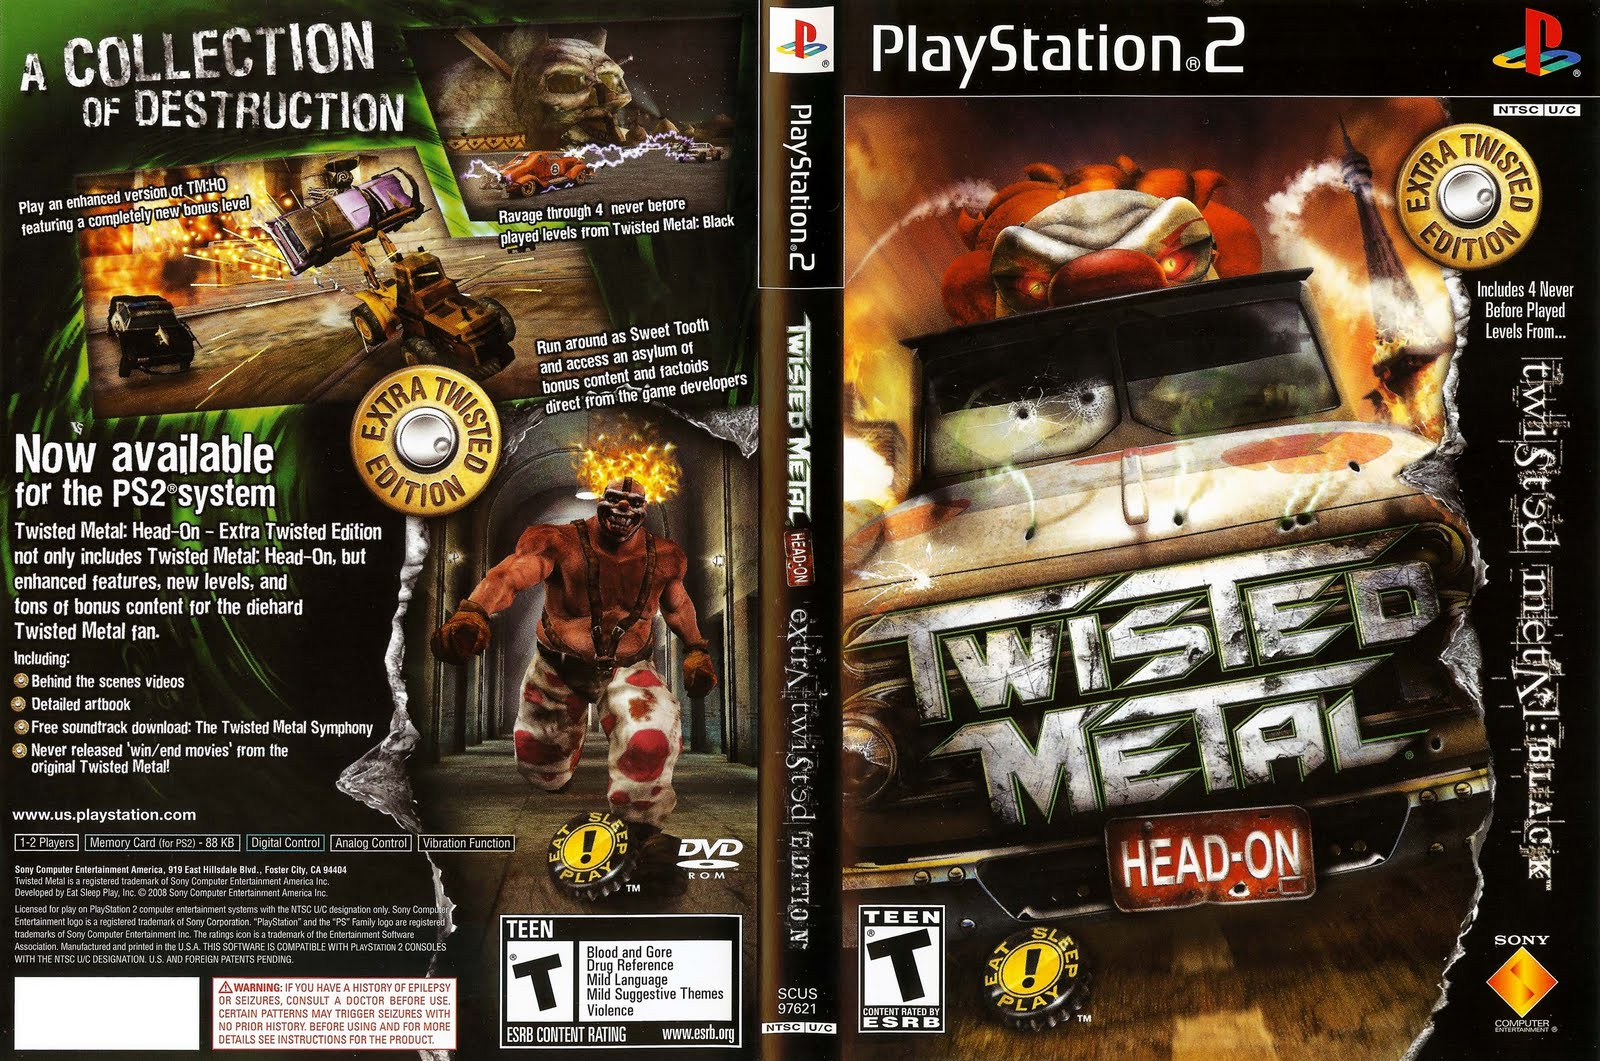 Download Game Ps2 Twisted Metal Black ISO Psx Free